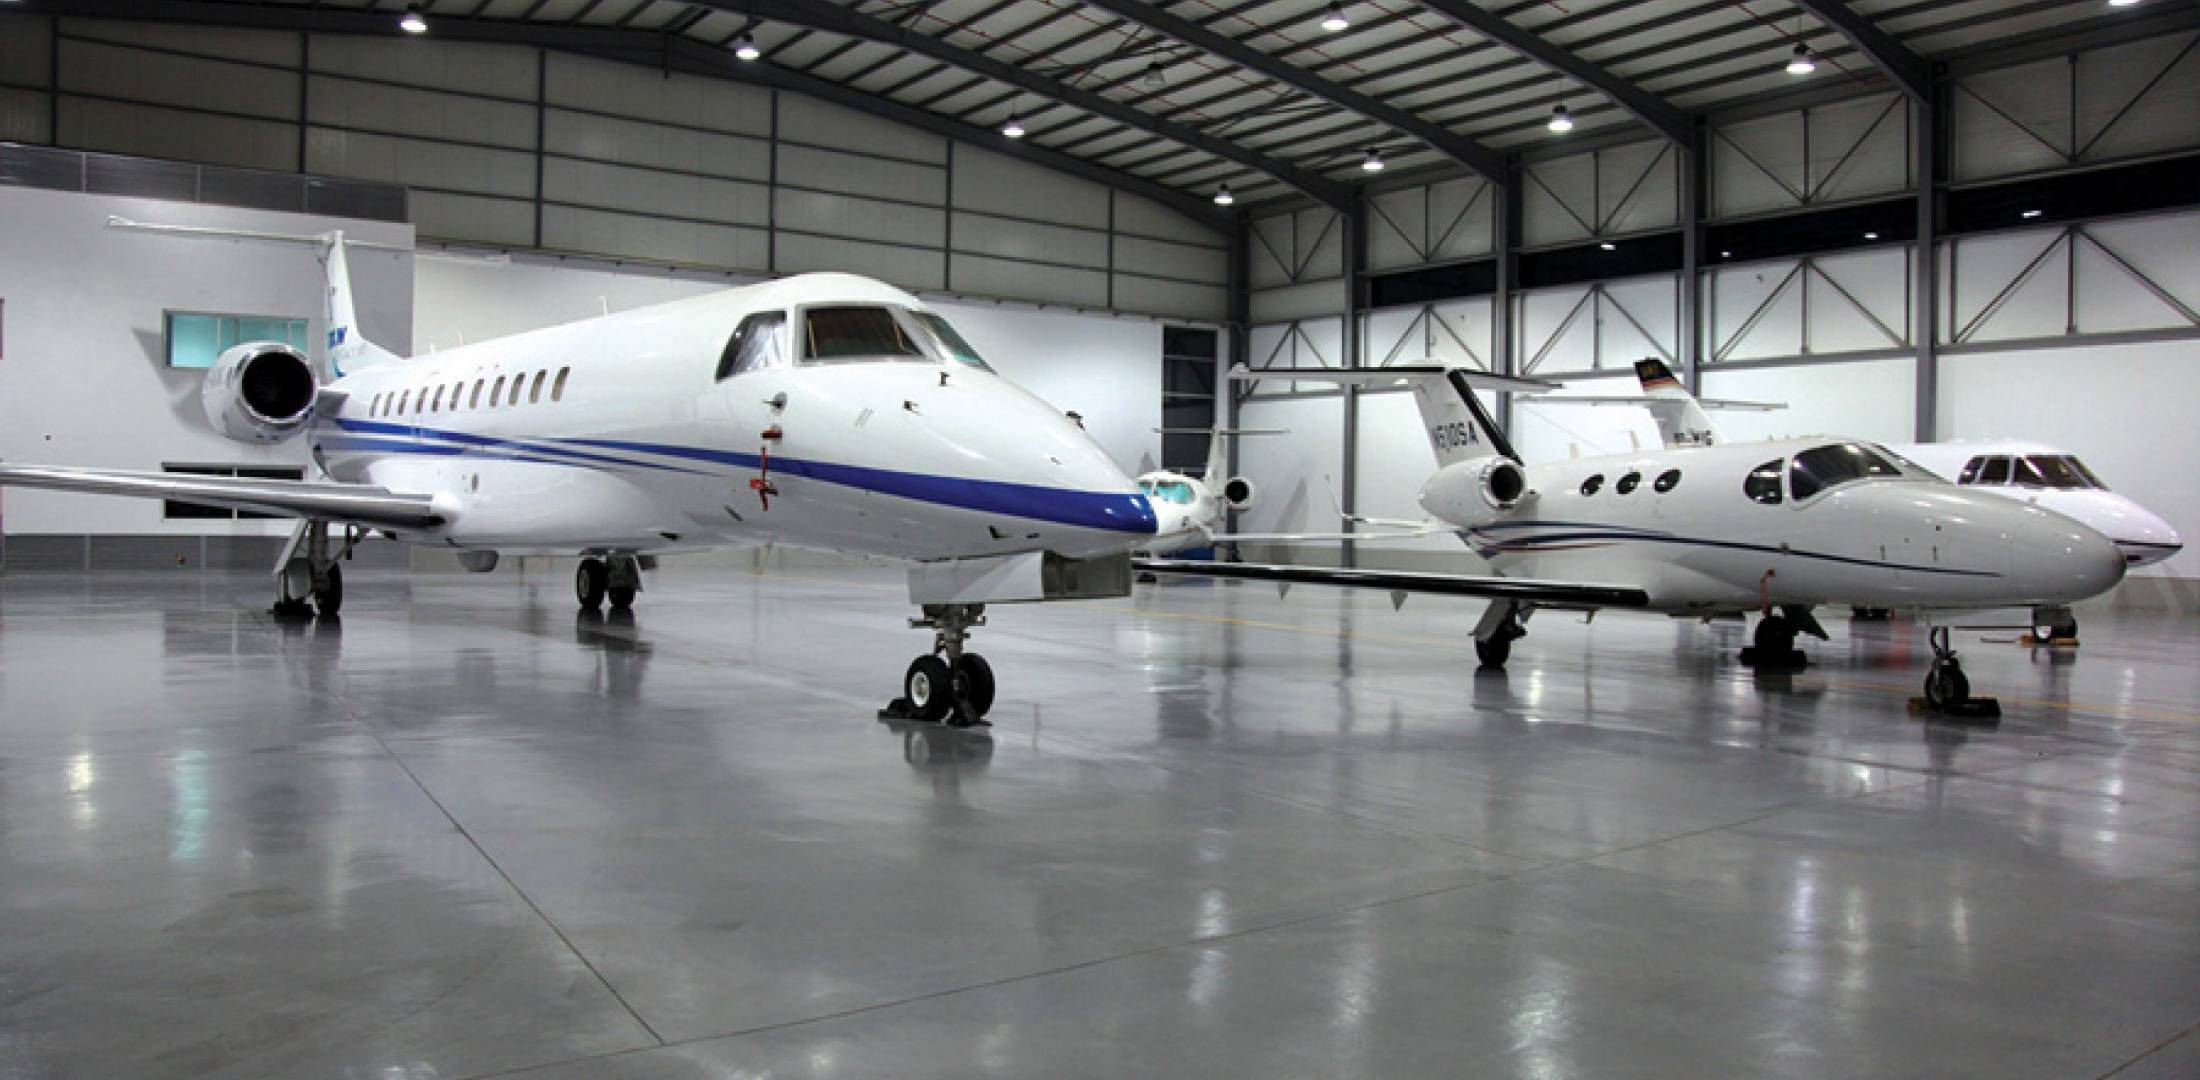 Cedar Jet offers management, hangarage and maintenance services for a range of aircraft, including the Embraer Legacy, Cessna Citation Mustang and Hawker 900XP.